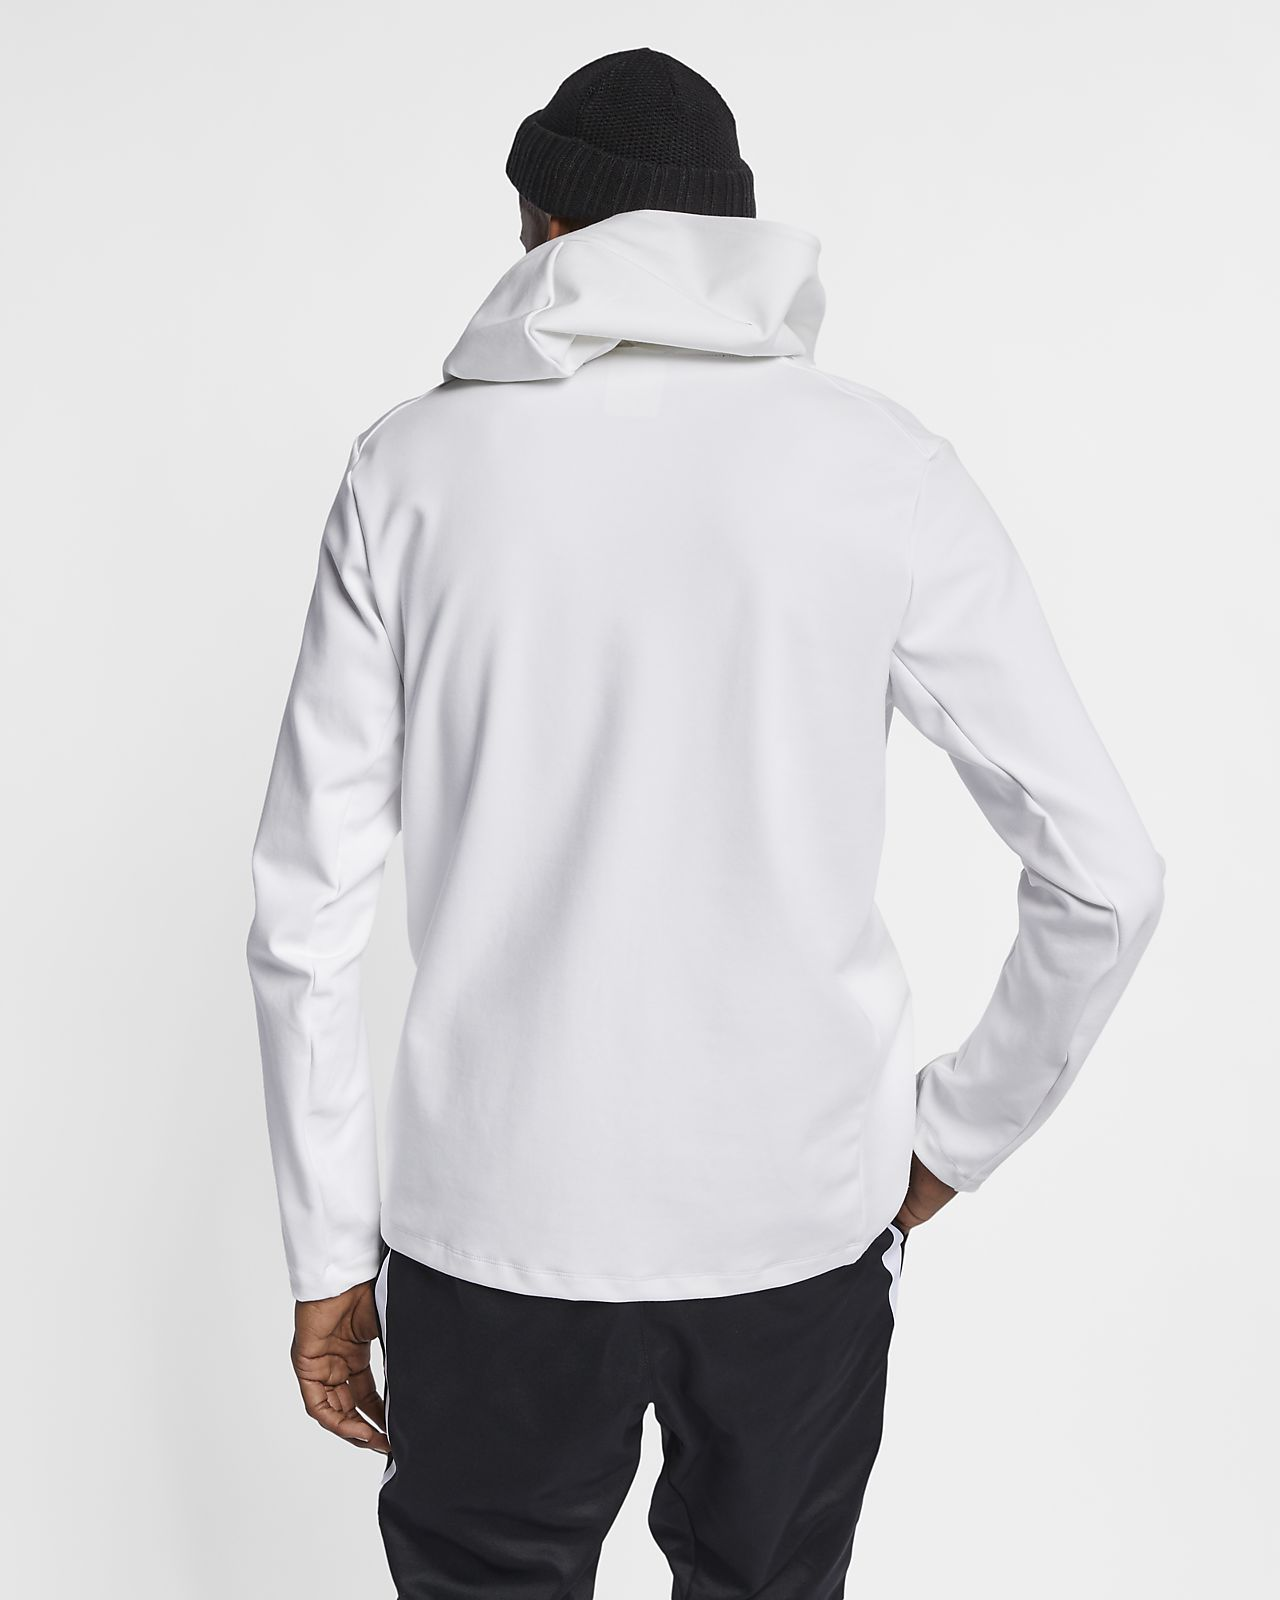 a891c5228871 Nike Sportswear Tech Pack Men s Full-Zip Hoodie. Nike.com